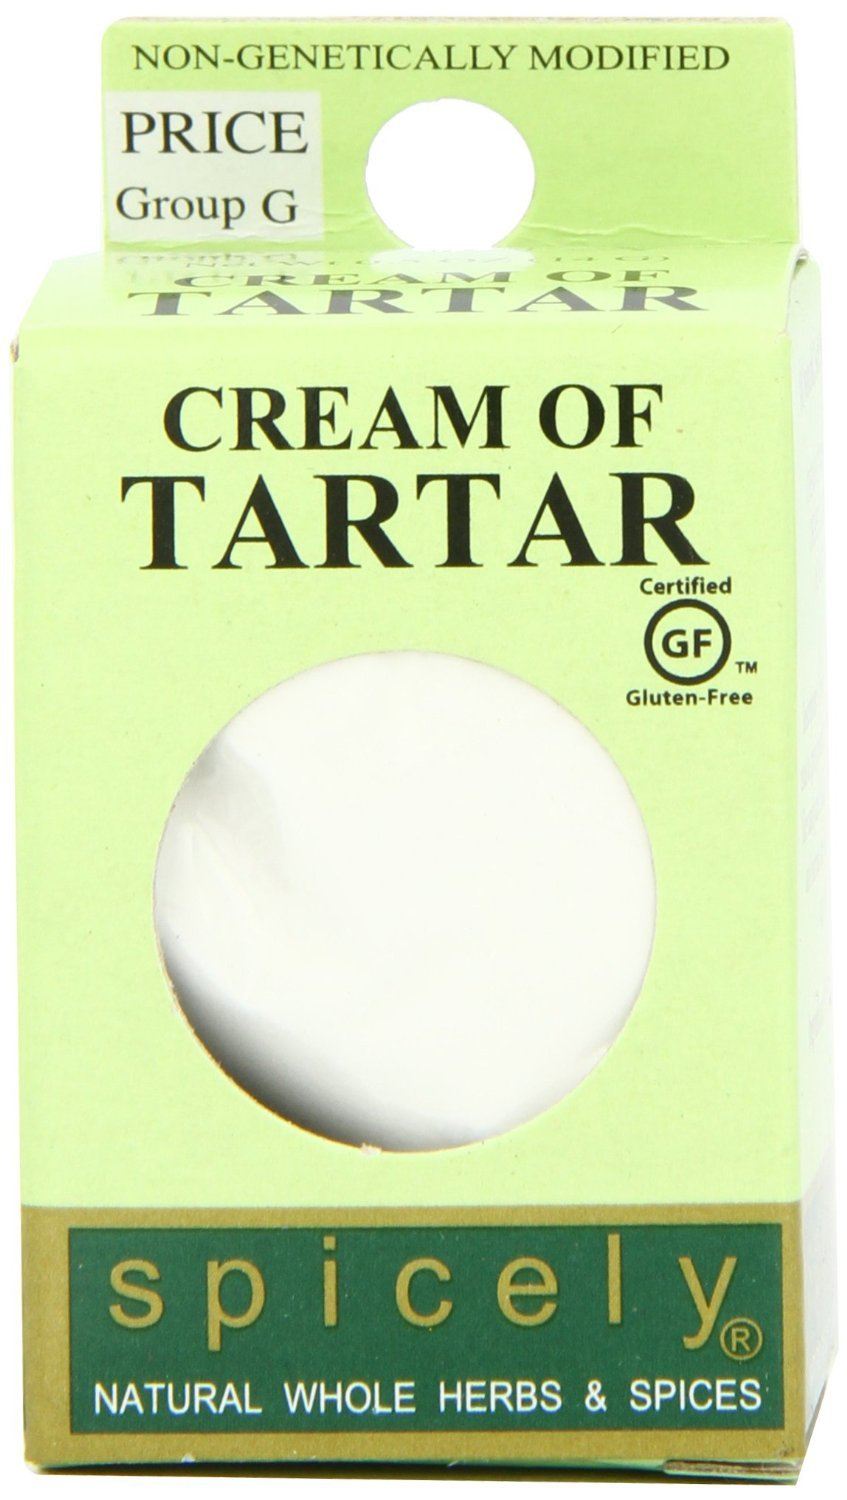 Spicely Cream of Tartar 0.50 Ounce ecoBox Certified Gluten-Free